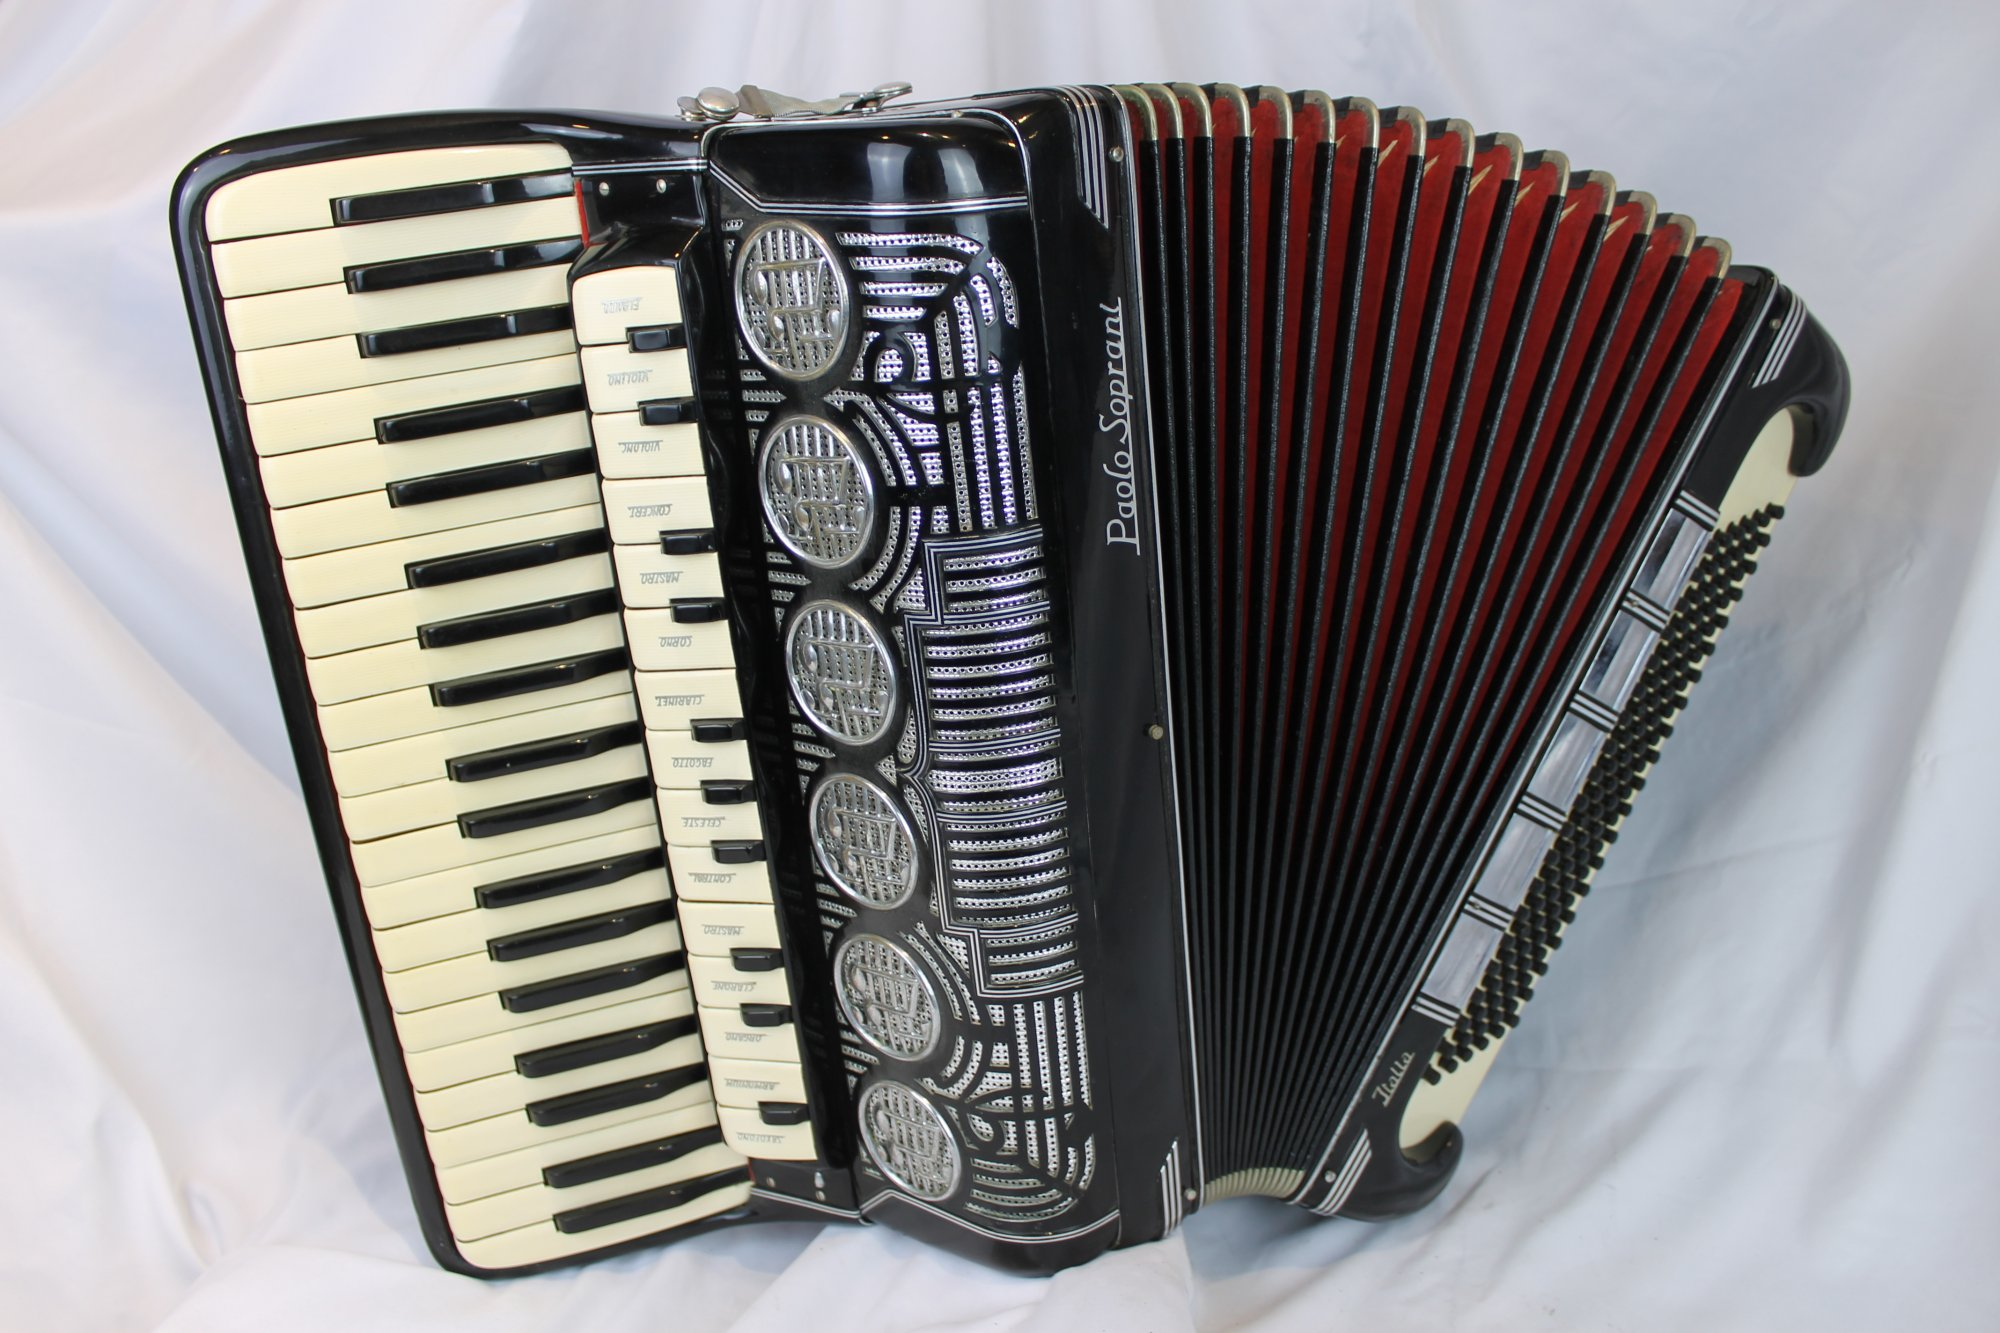 4269 - Black Paolo Soprani Italia Piano Accordion Tone Chamber LMMH 41 120